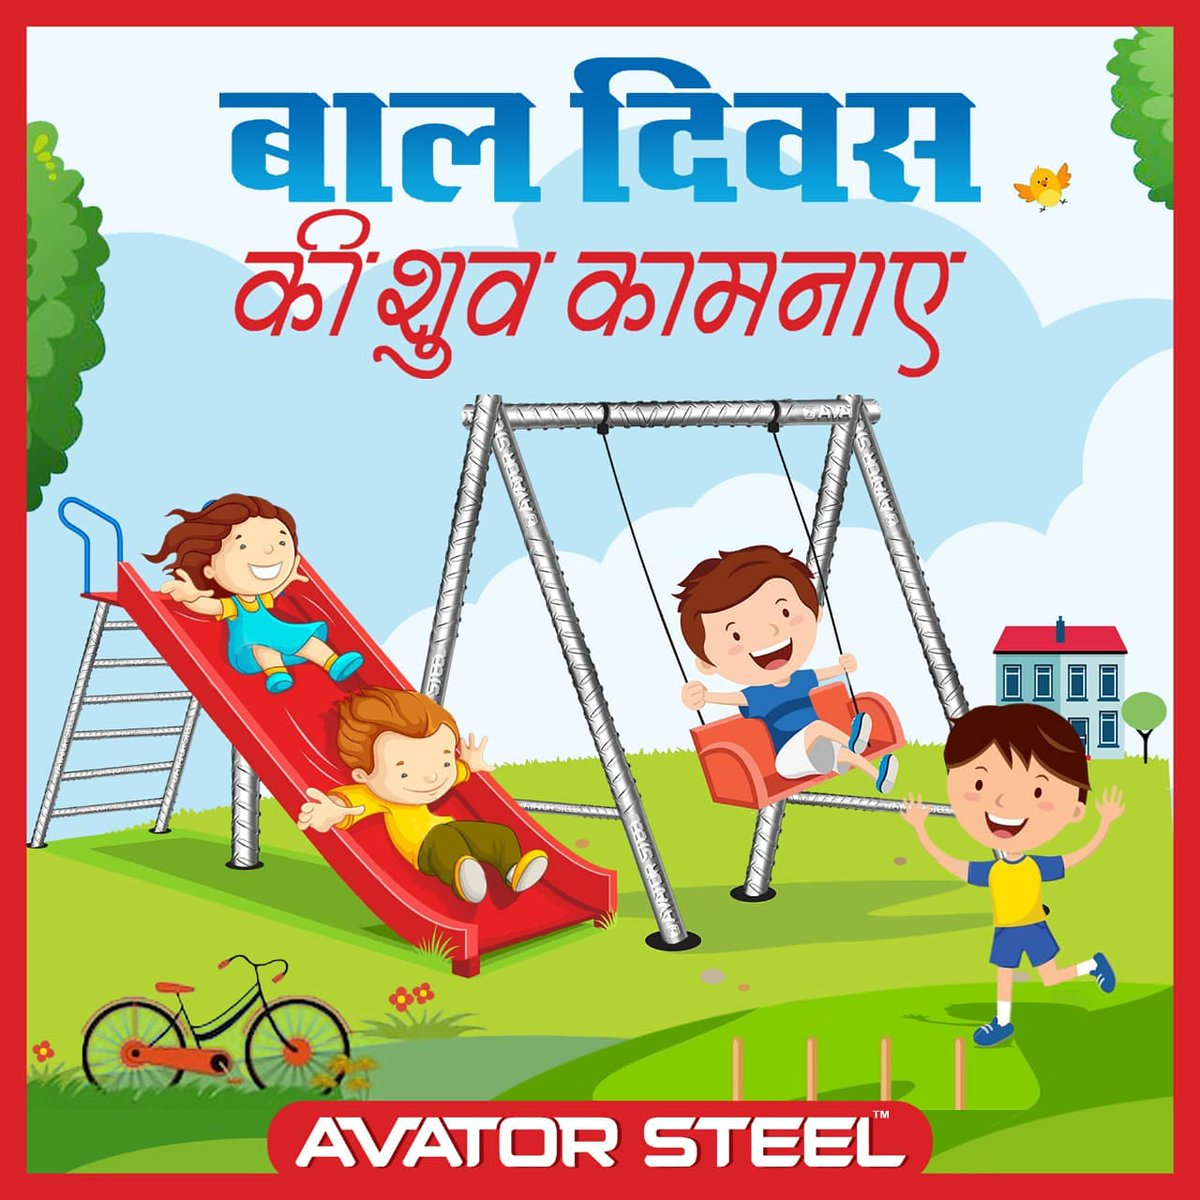 May the innocence in their smiles and the purity of their hearts never fade away.  #AvatorSteel wishes all the kids in the world a very happy children's day.  #happychildrensday